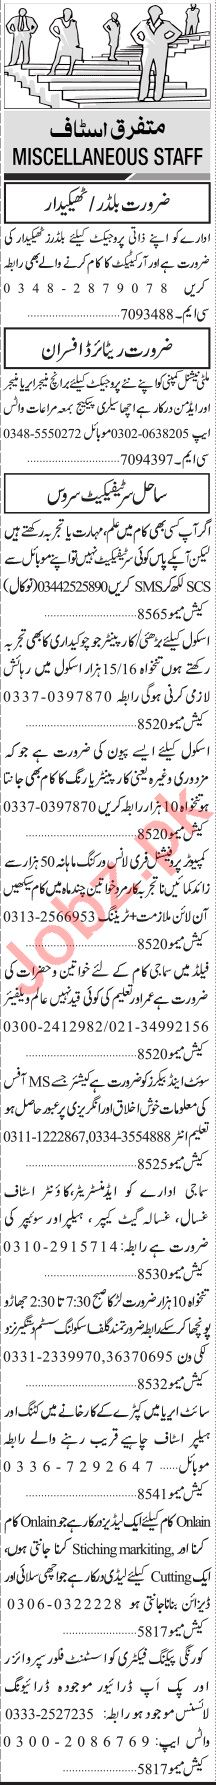 Jang Sunday Classified Ads 7th Feb 2021 for General Staff